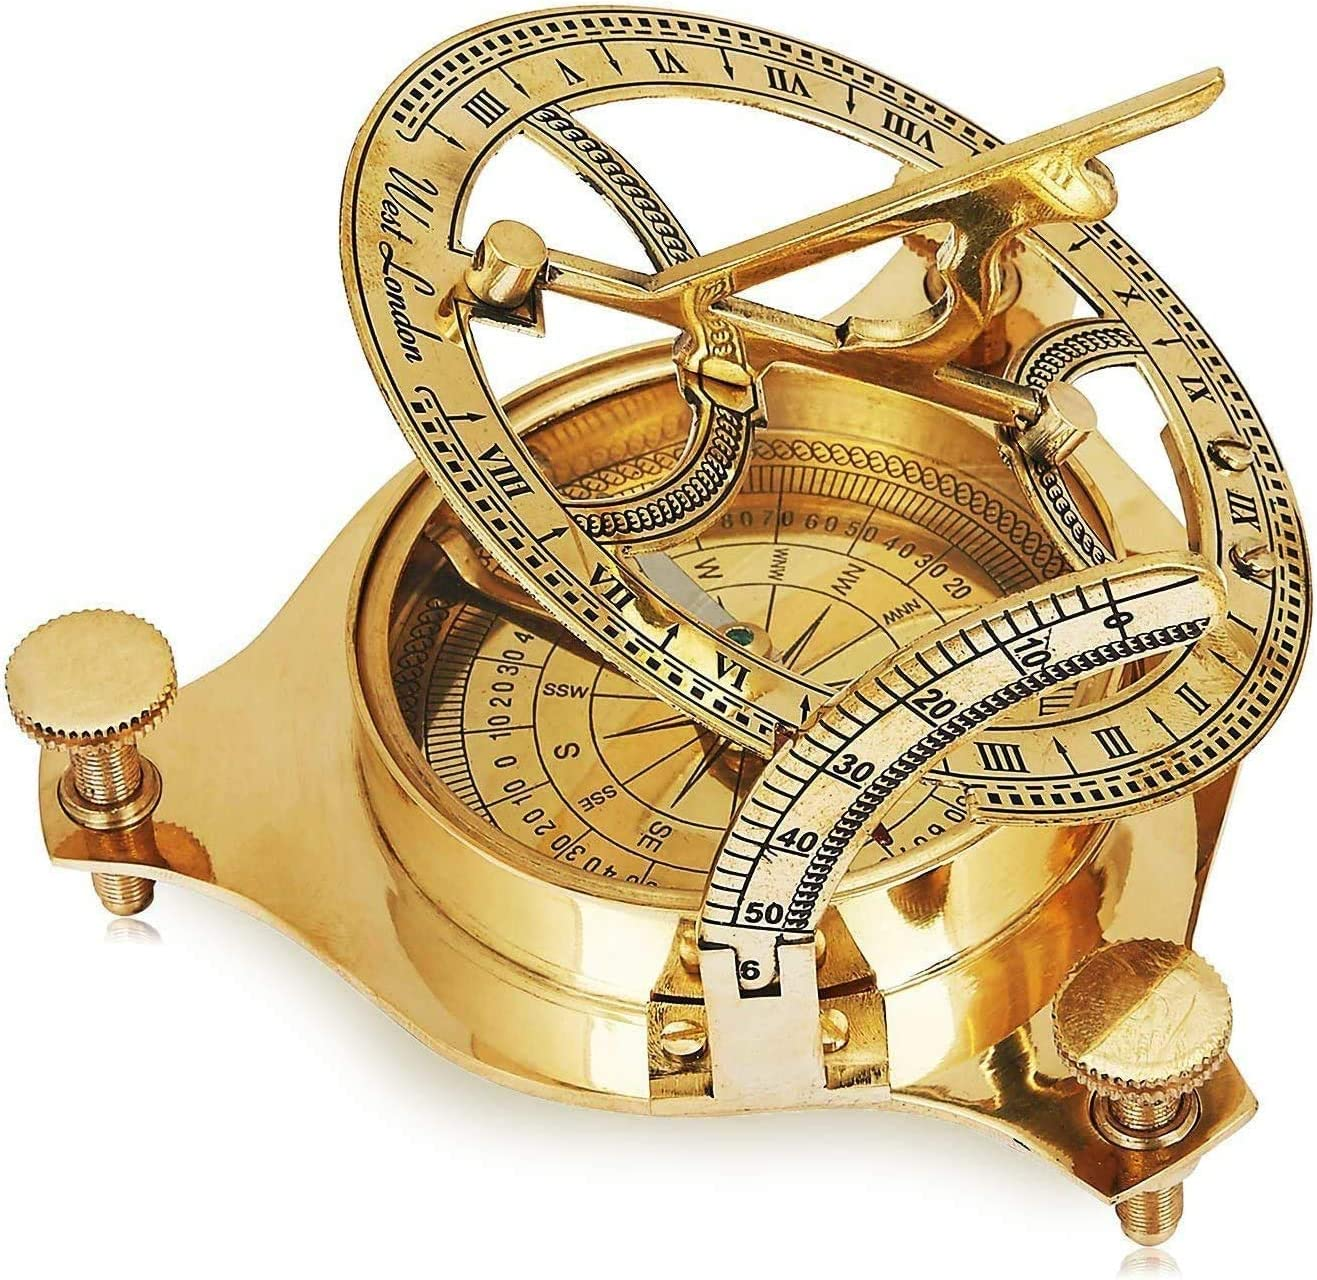 Unique Birthday Gift Ideas Solid Brass Classic Sundial Compass Hiking Climbing Biking Hunting Camping Survival Compass Outdoor Navigation Directional Nautical Liquid Filled Compass Housewarming Gifts